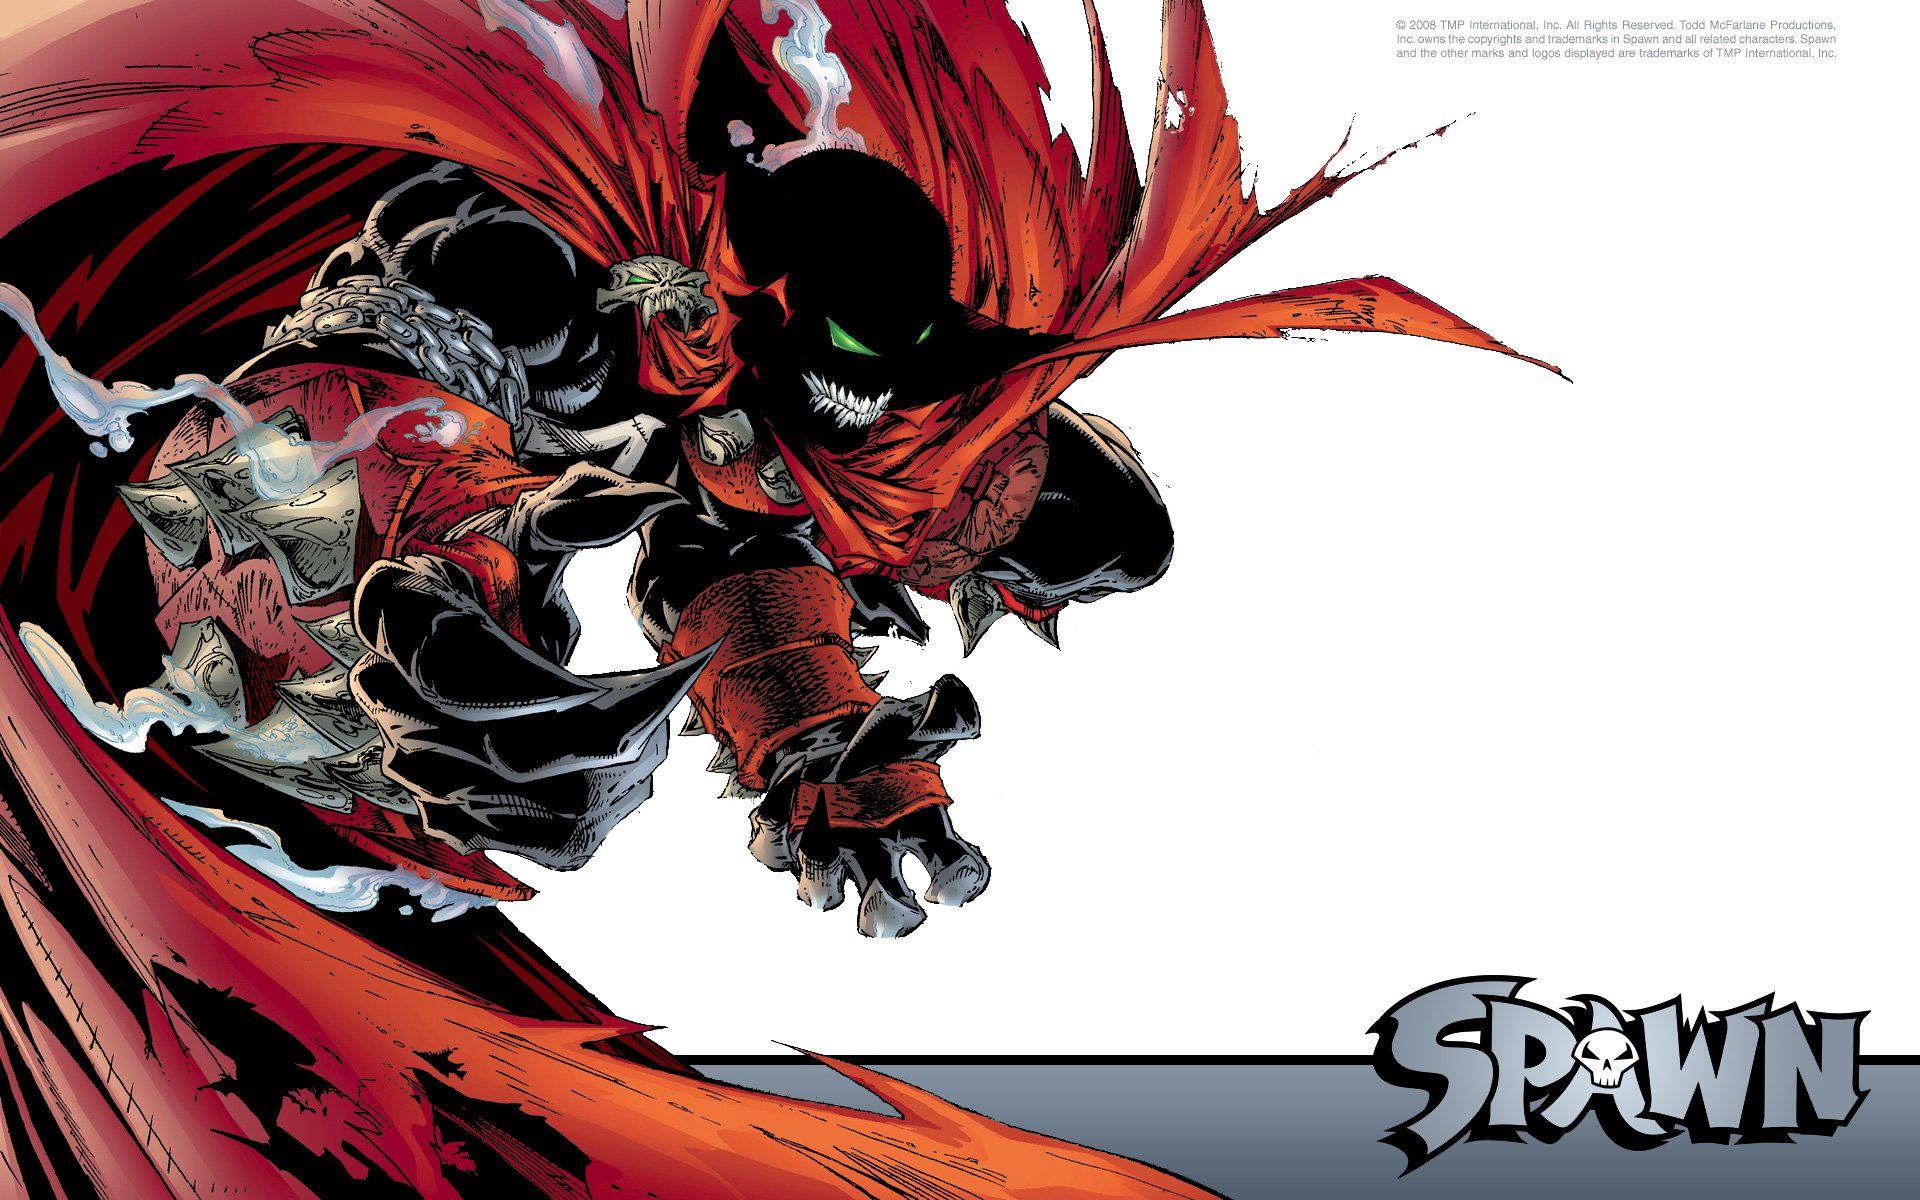 Hellspawn Wallpaper For Iphone Free Download Spawn